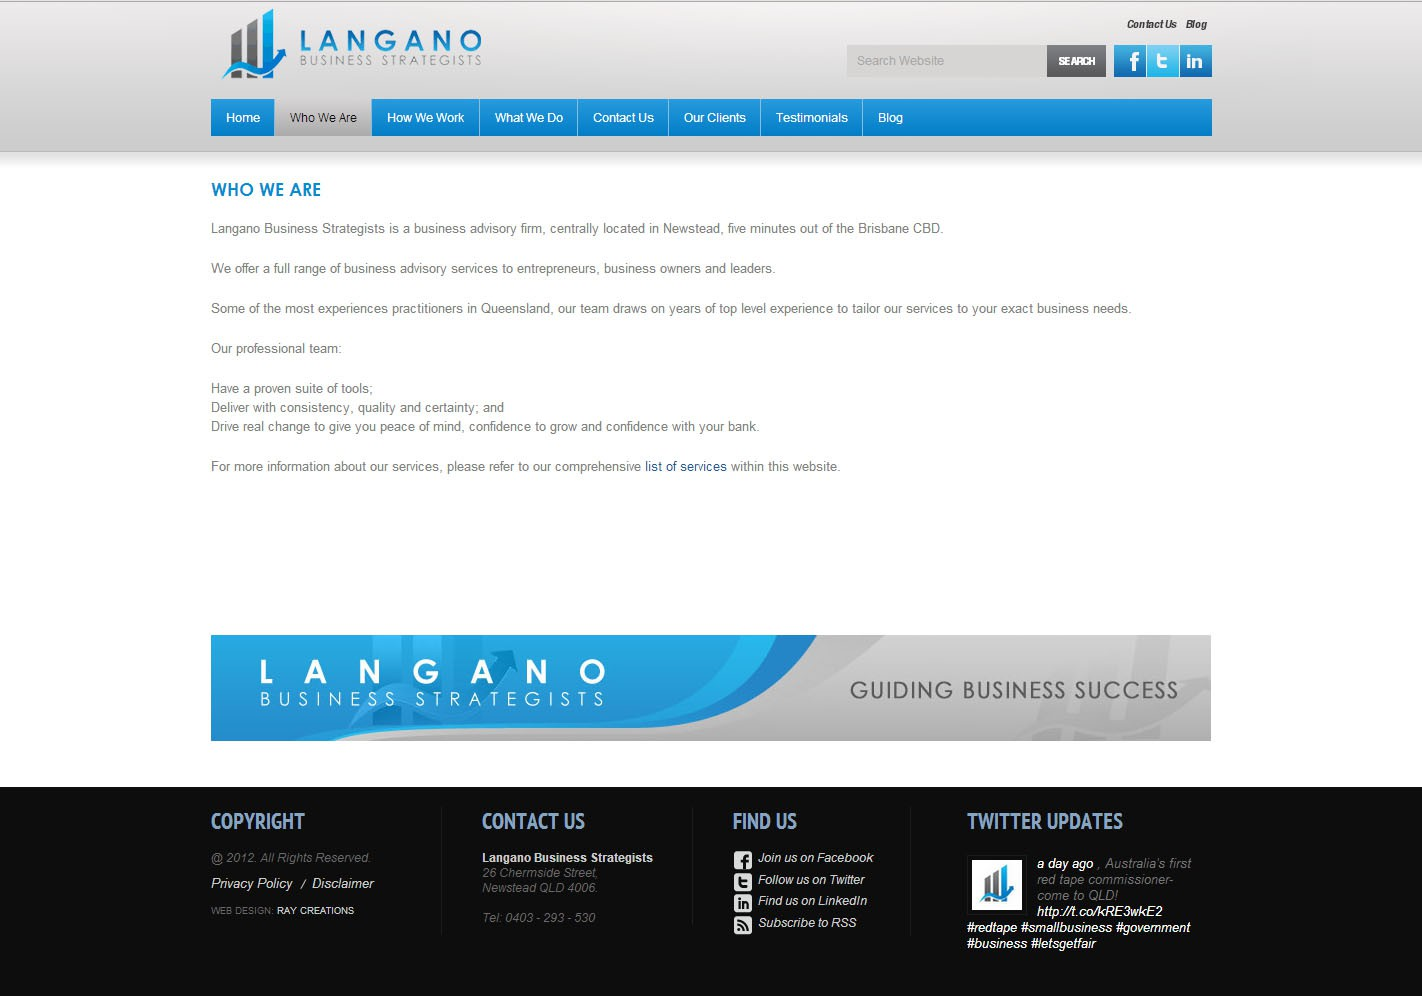 New business or advertising wanted for Langano Business Strategists